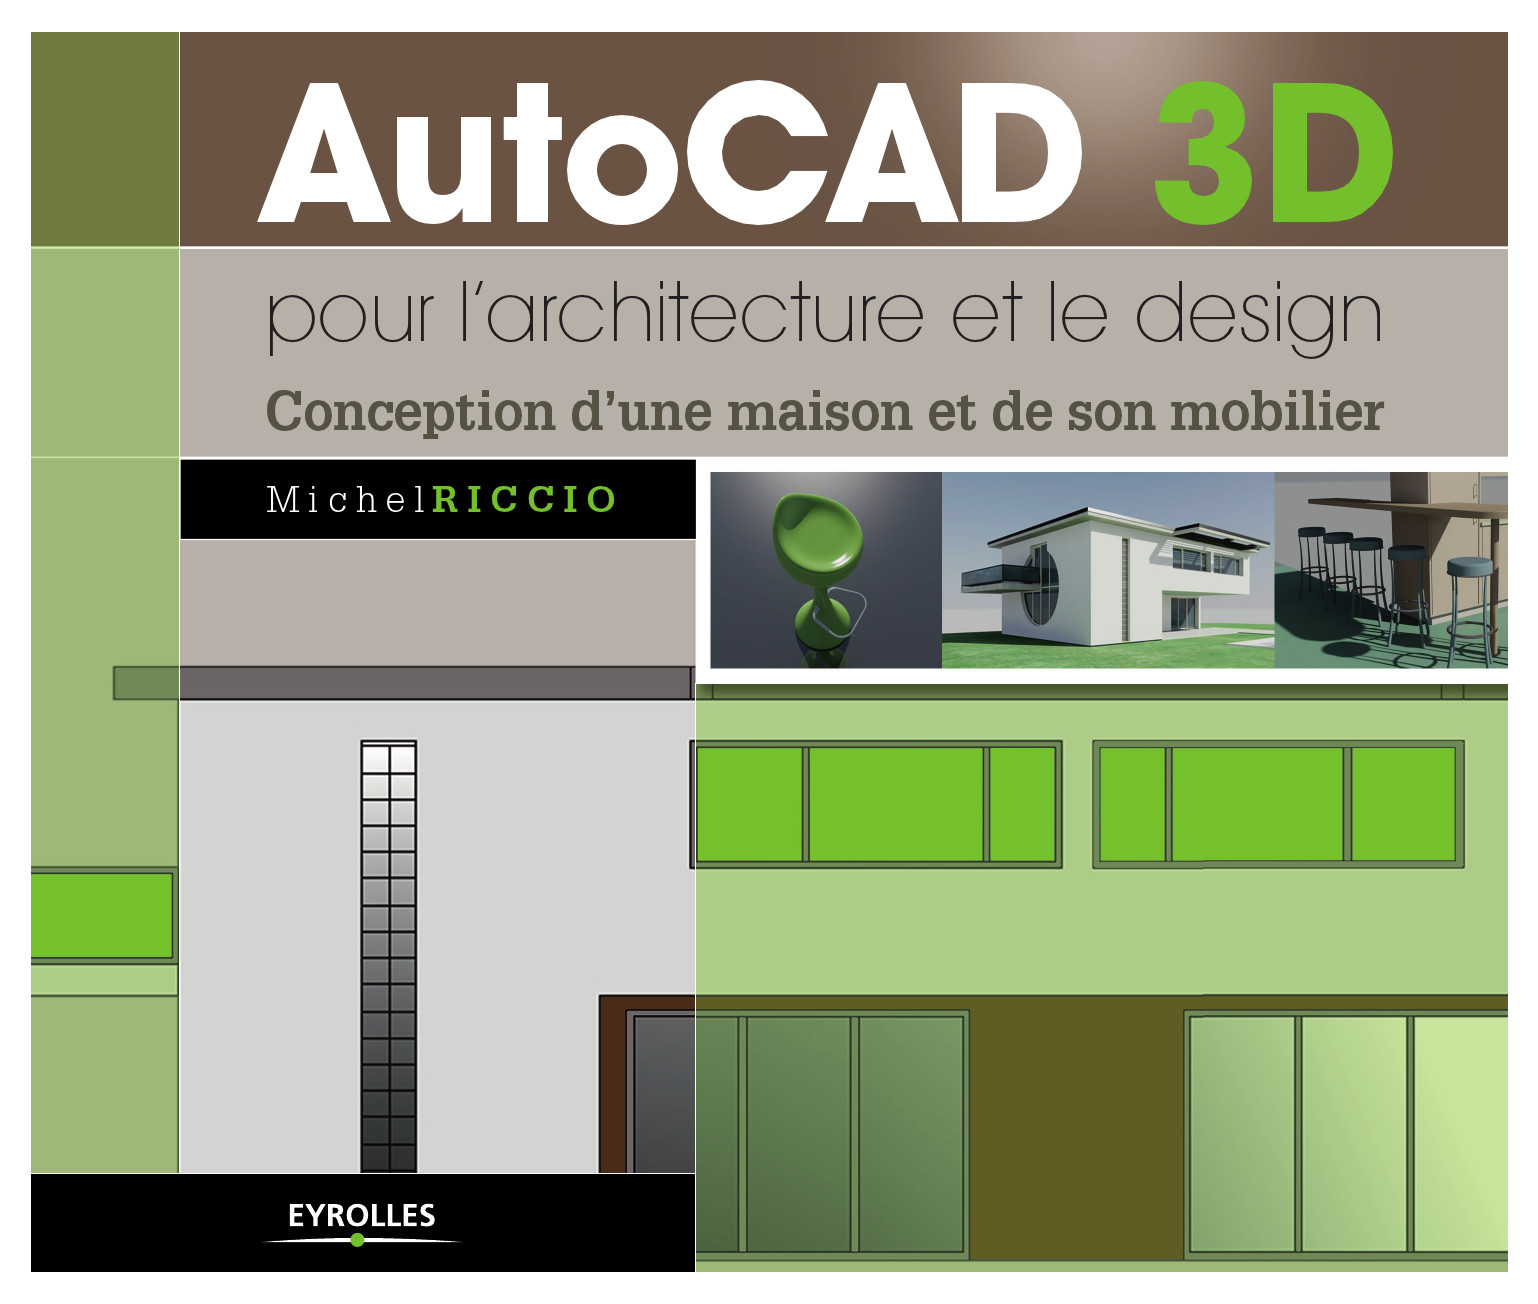 Ebook autocad 3d pour l 39 architecture et le design for Architecture et son